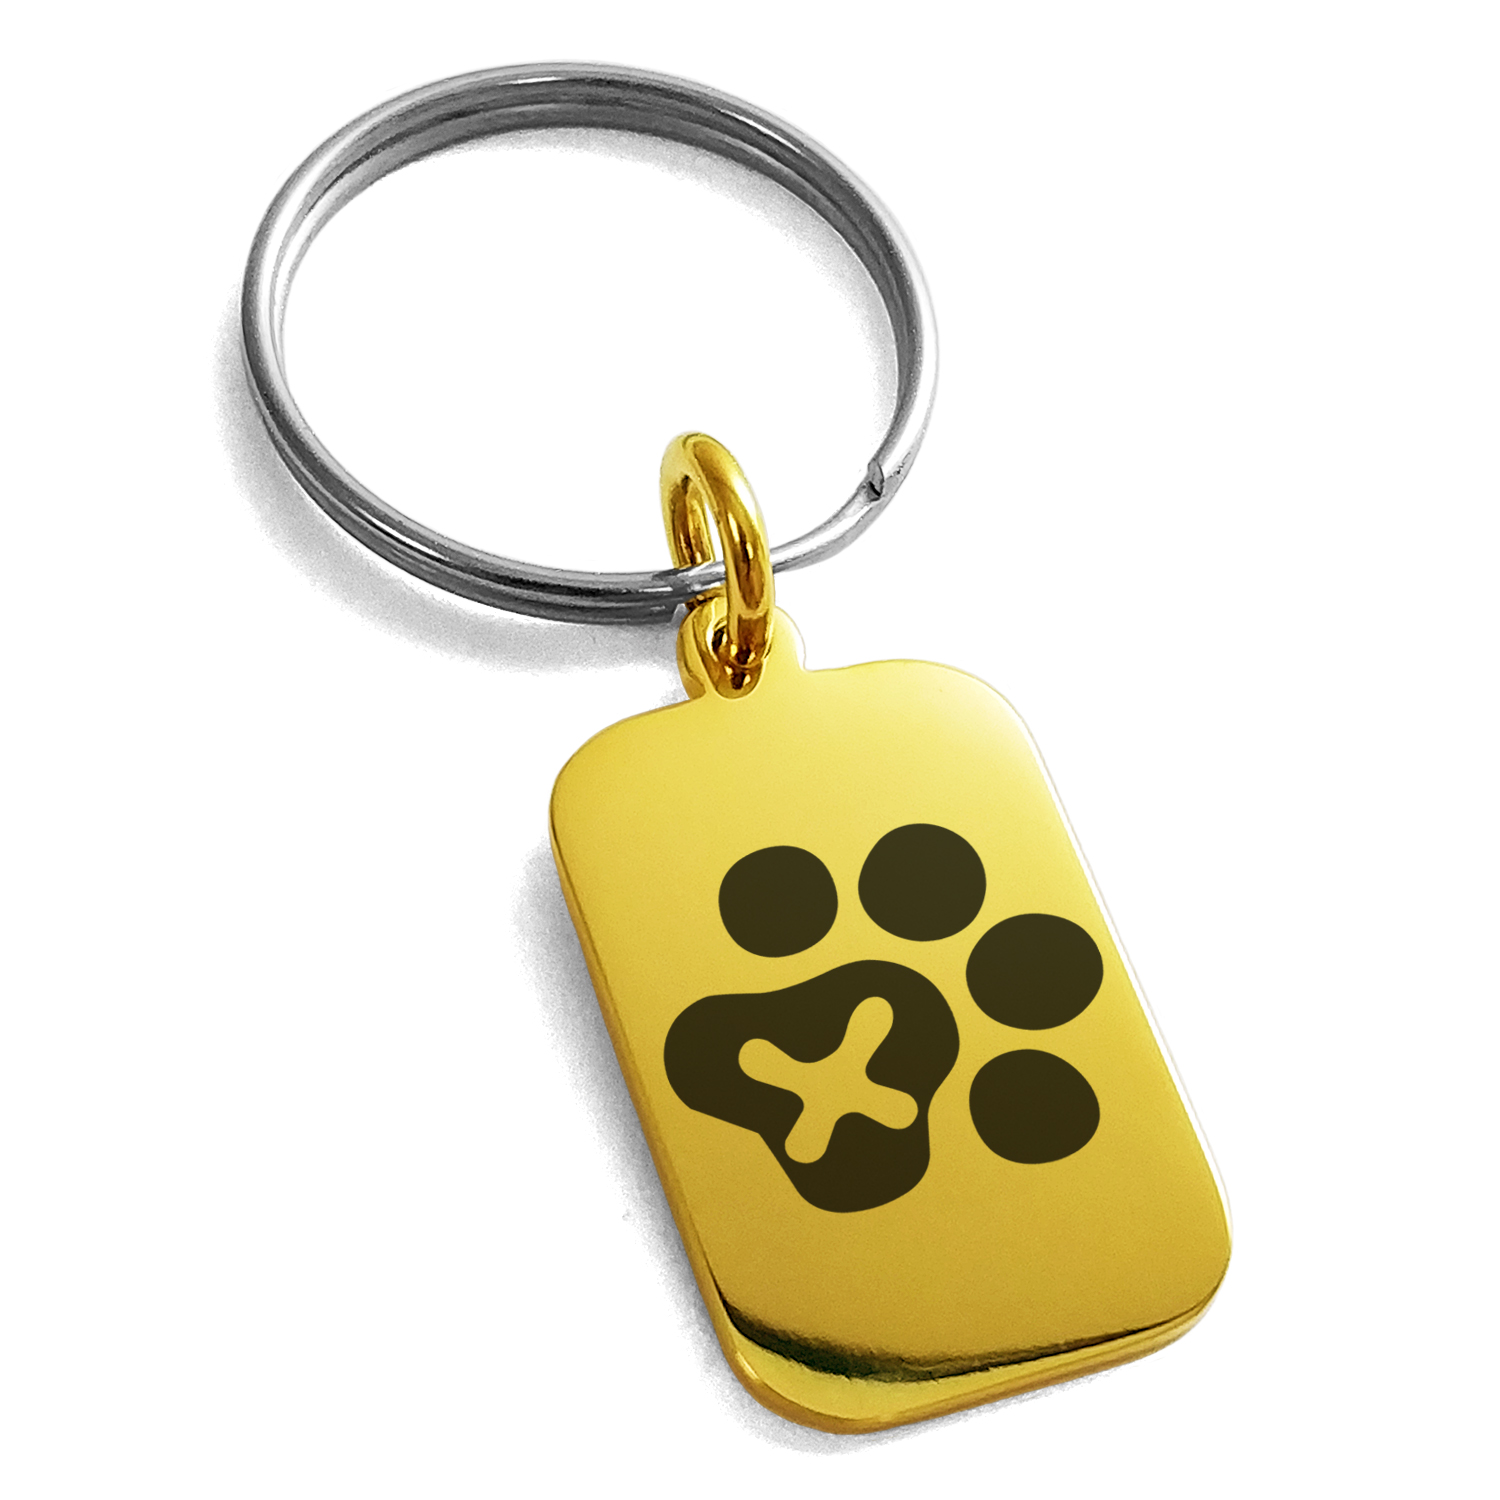 Stainless Steel Letter X Initial Cat Dog Paws Monogram Engraved Small Rectangle Dog Tag Charm Keychain Keyring